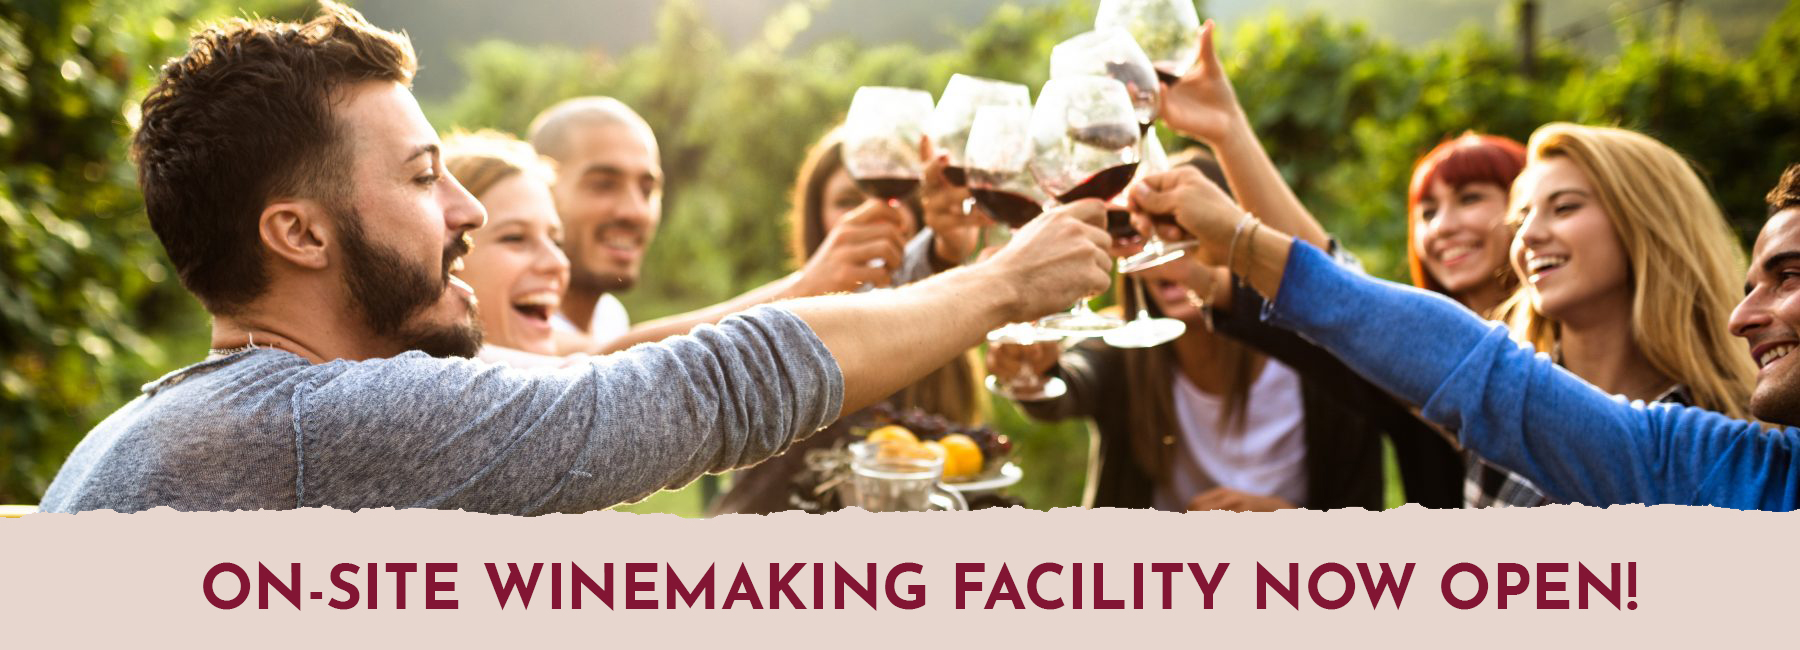 Winemaking Facility now open